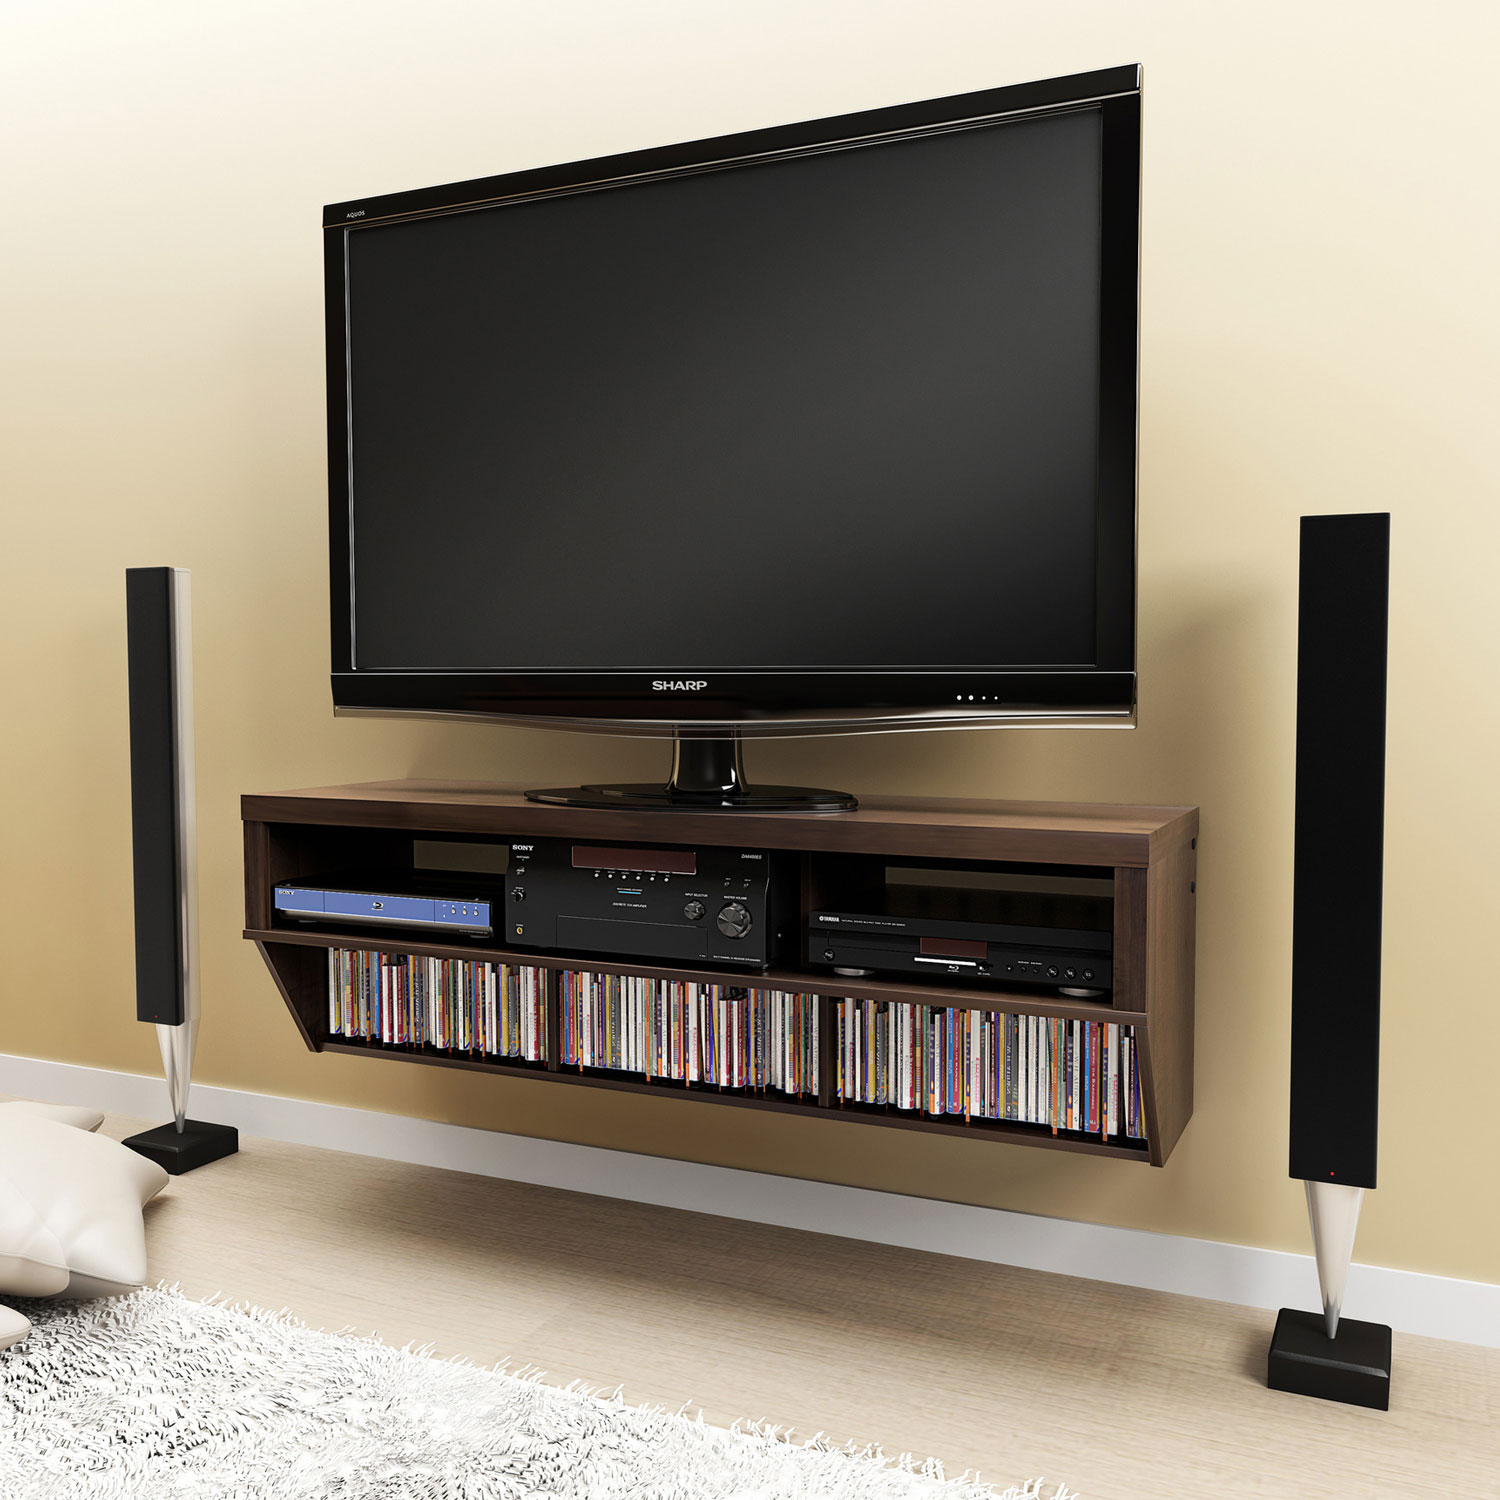 Espresso 58 wide wall mounted av console - Images of wall mounted ...